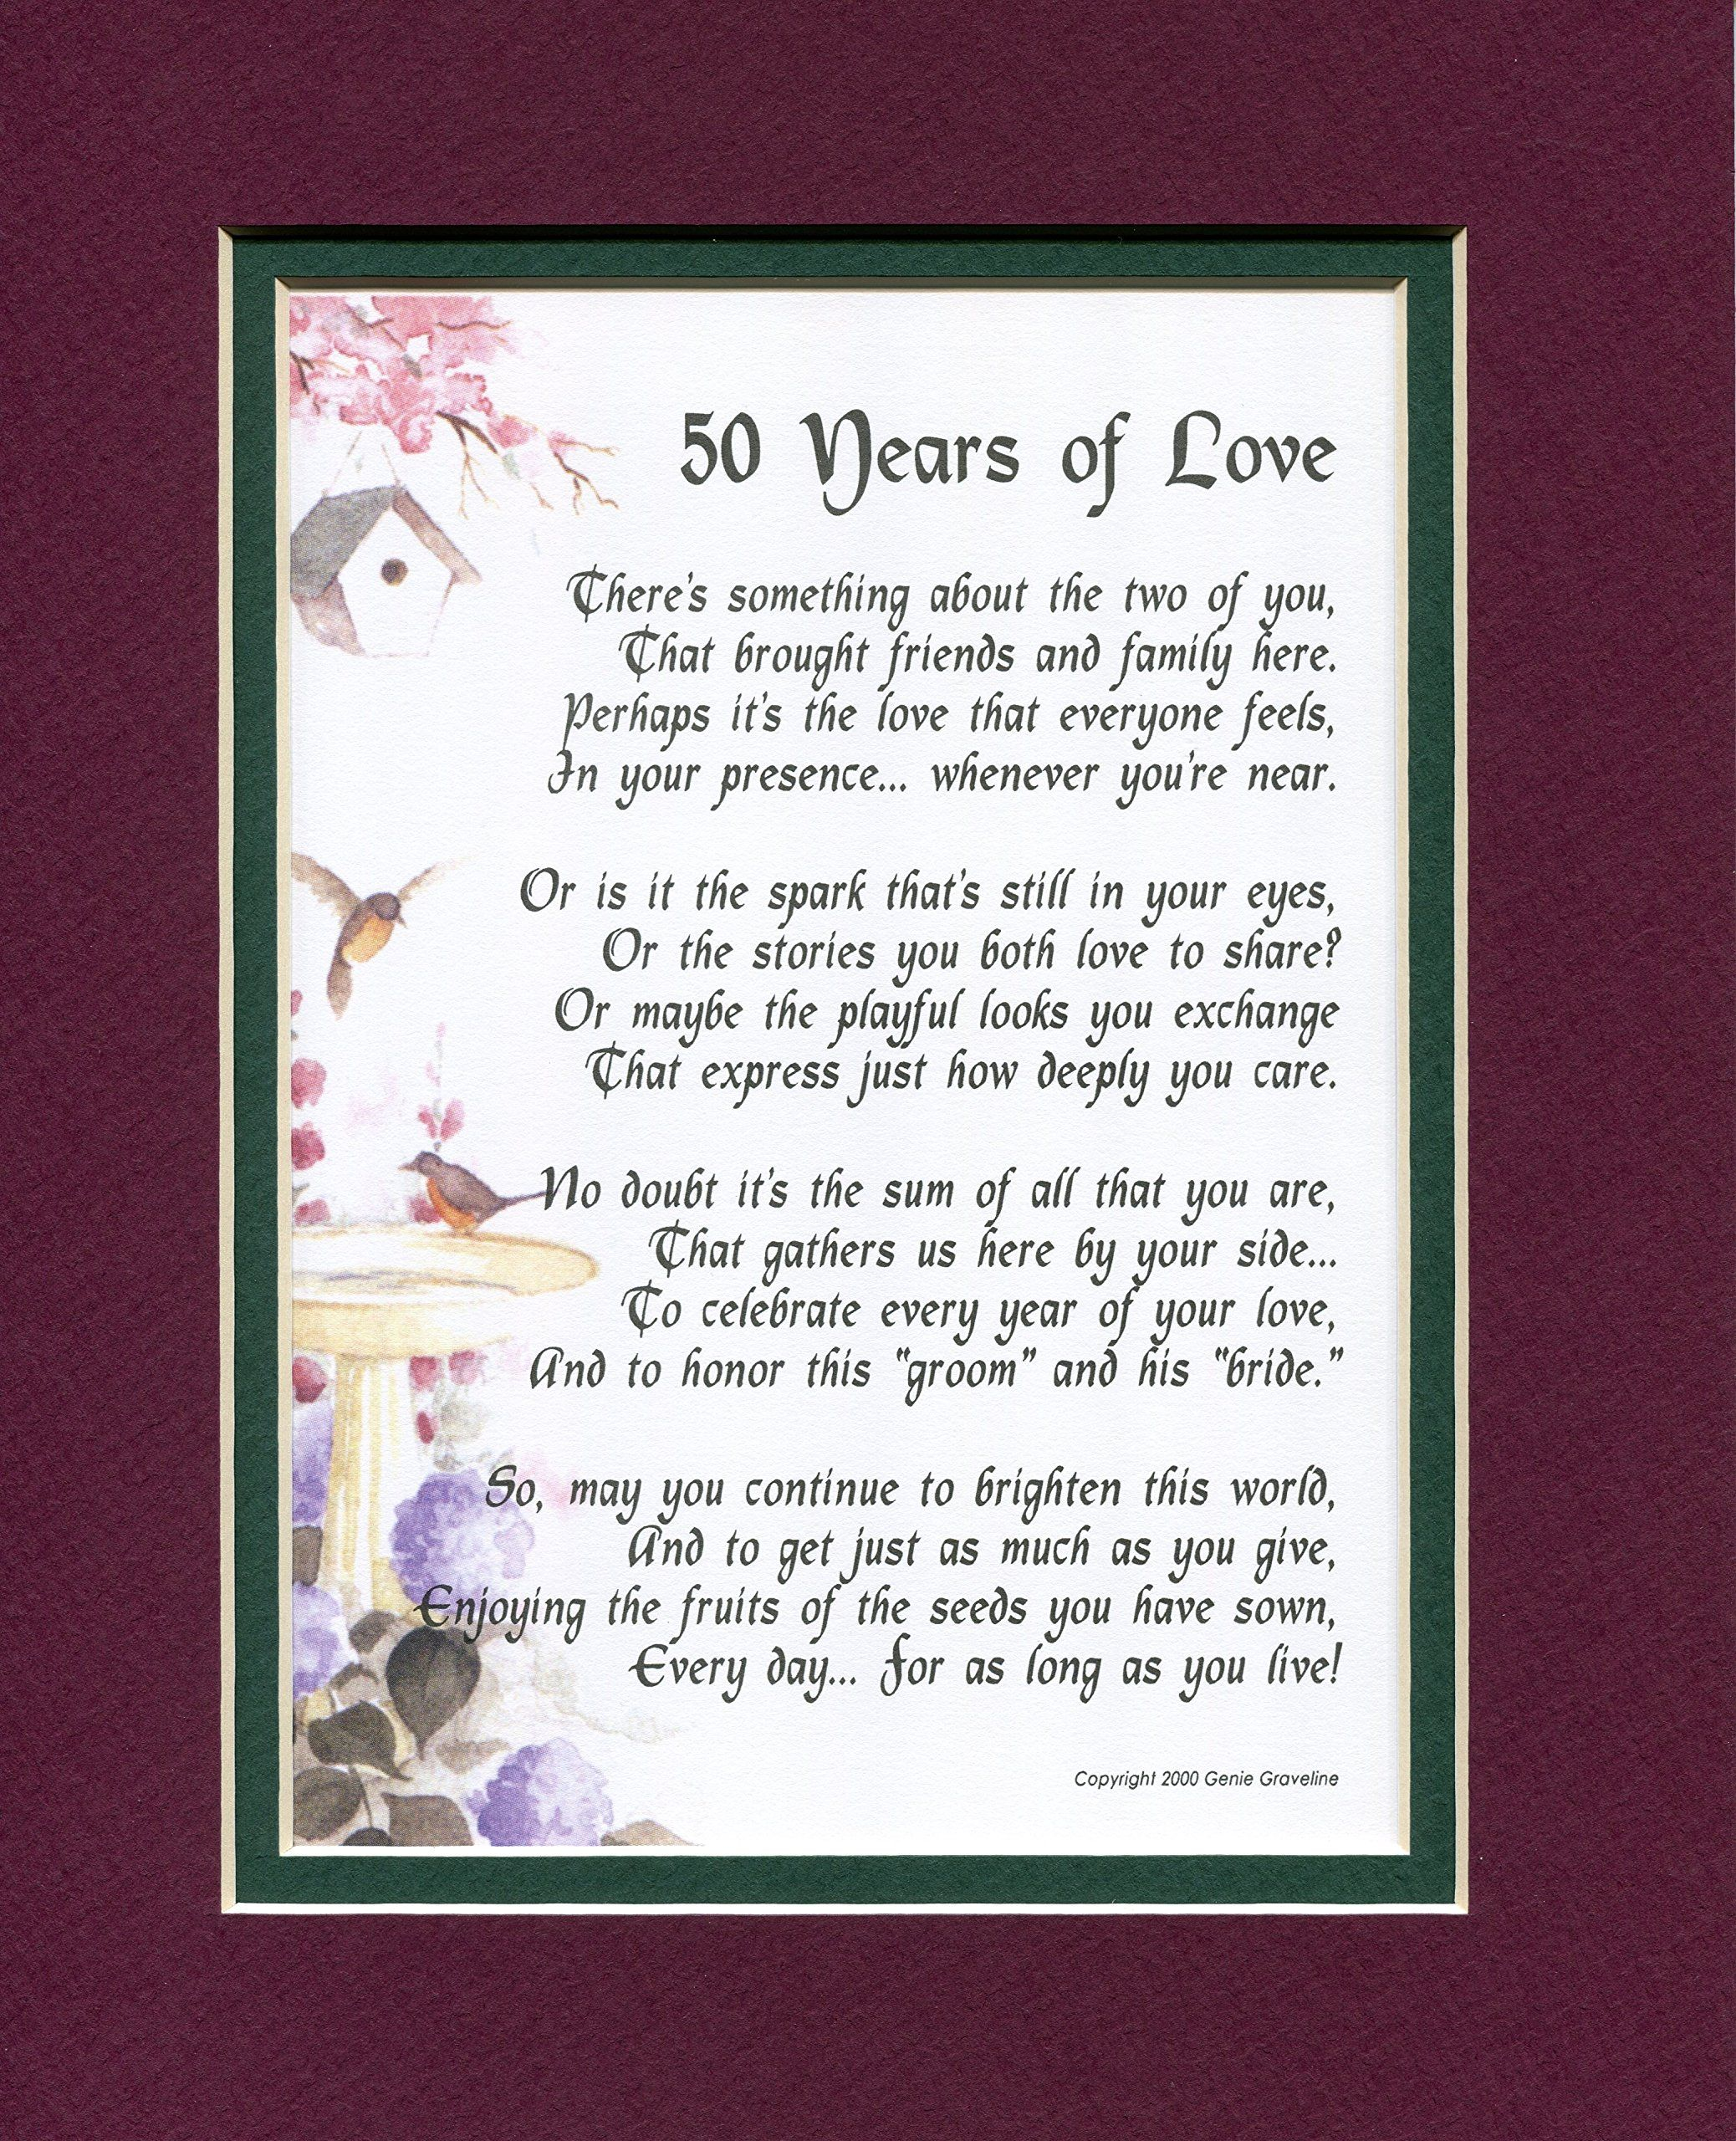 Years Of Love  Touching Poem A Gift For A Th Wedding Anniversary Double Matted In Burgundy Dark Green And Enhanced With Watercolor Graphics